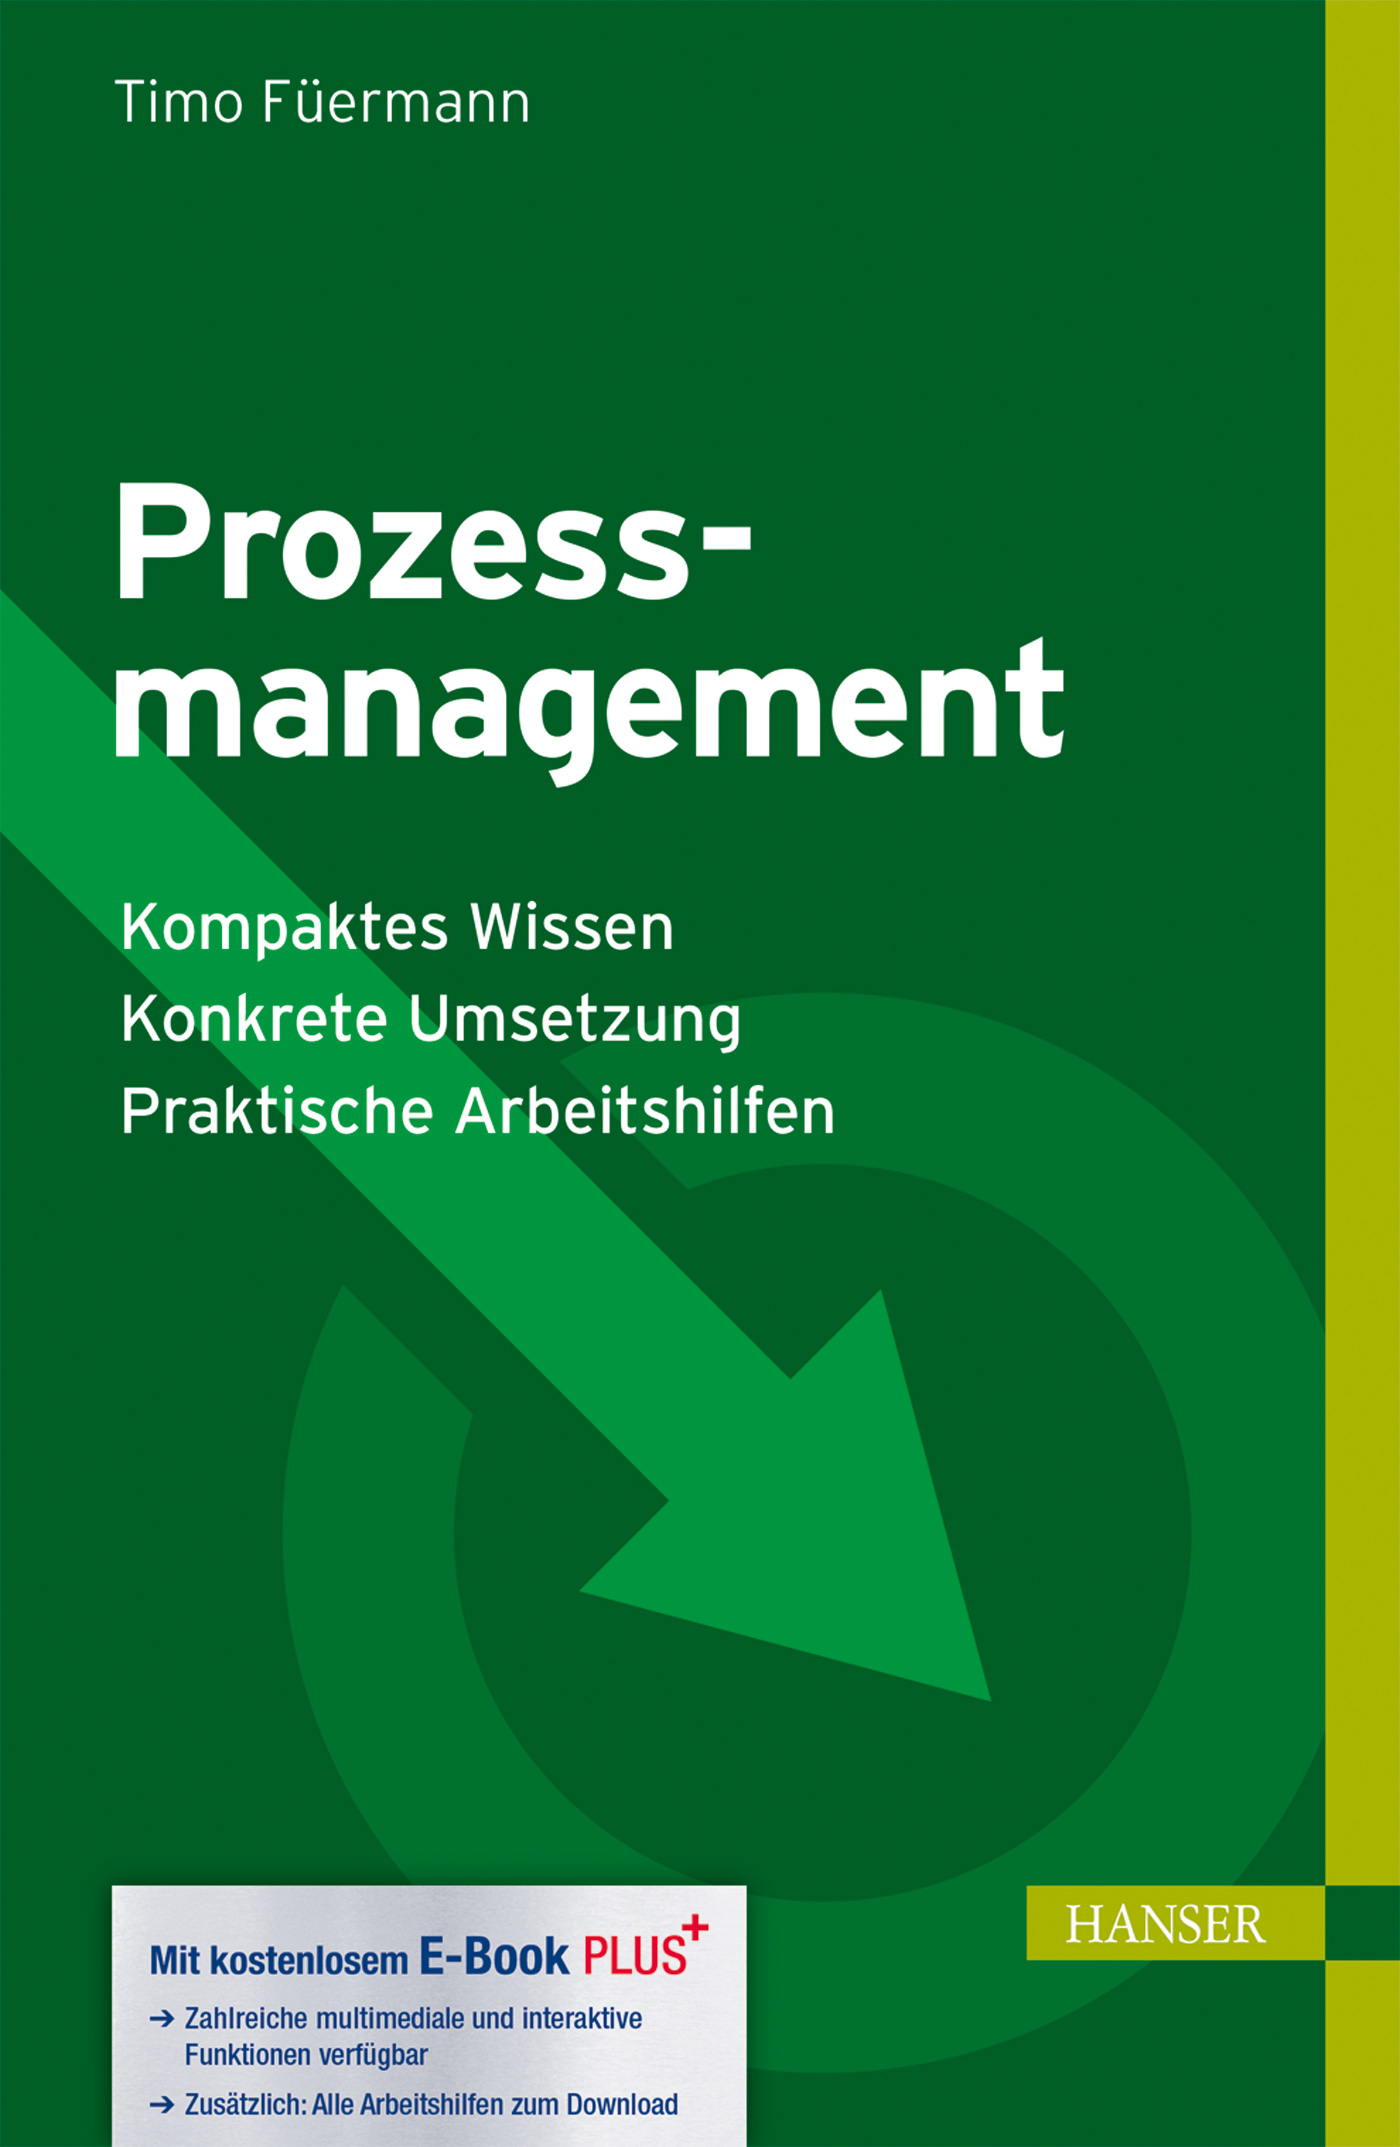 Füermann, Prozessmanagement, 978-3-446-43858-3